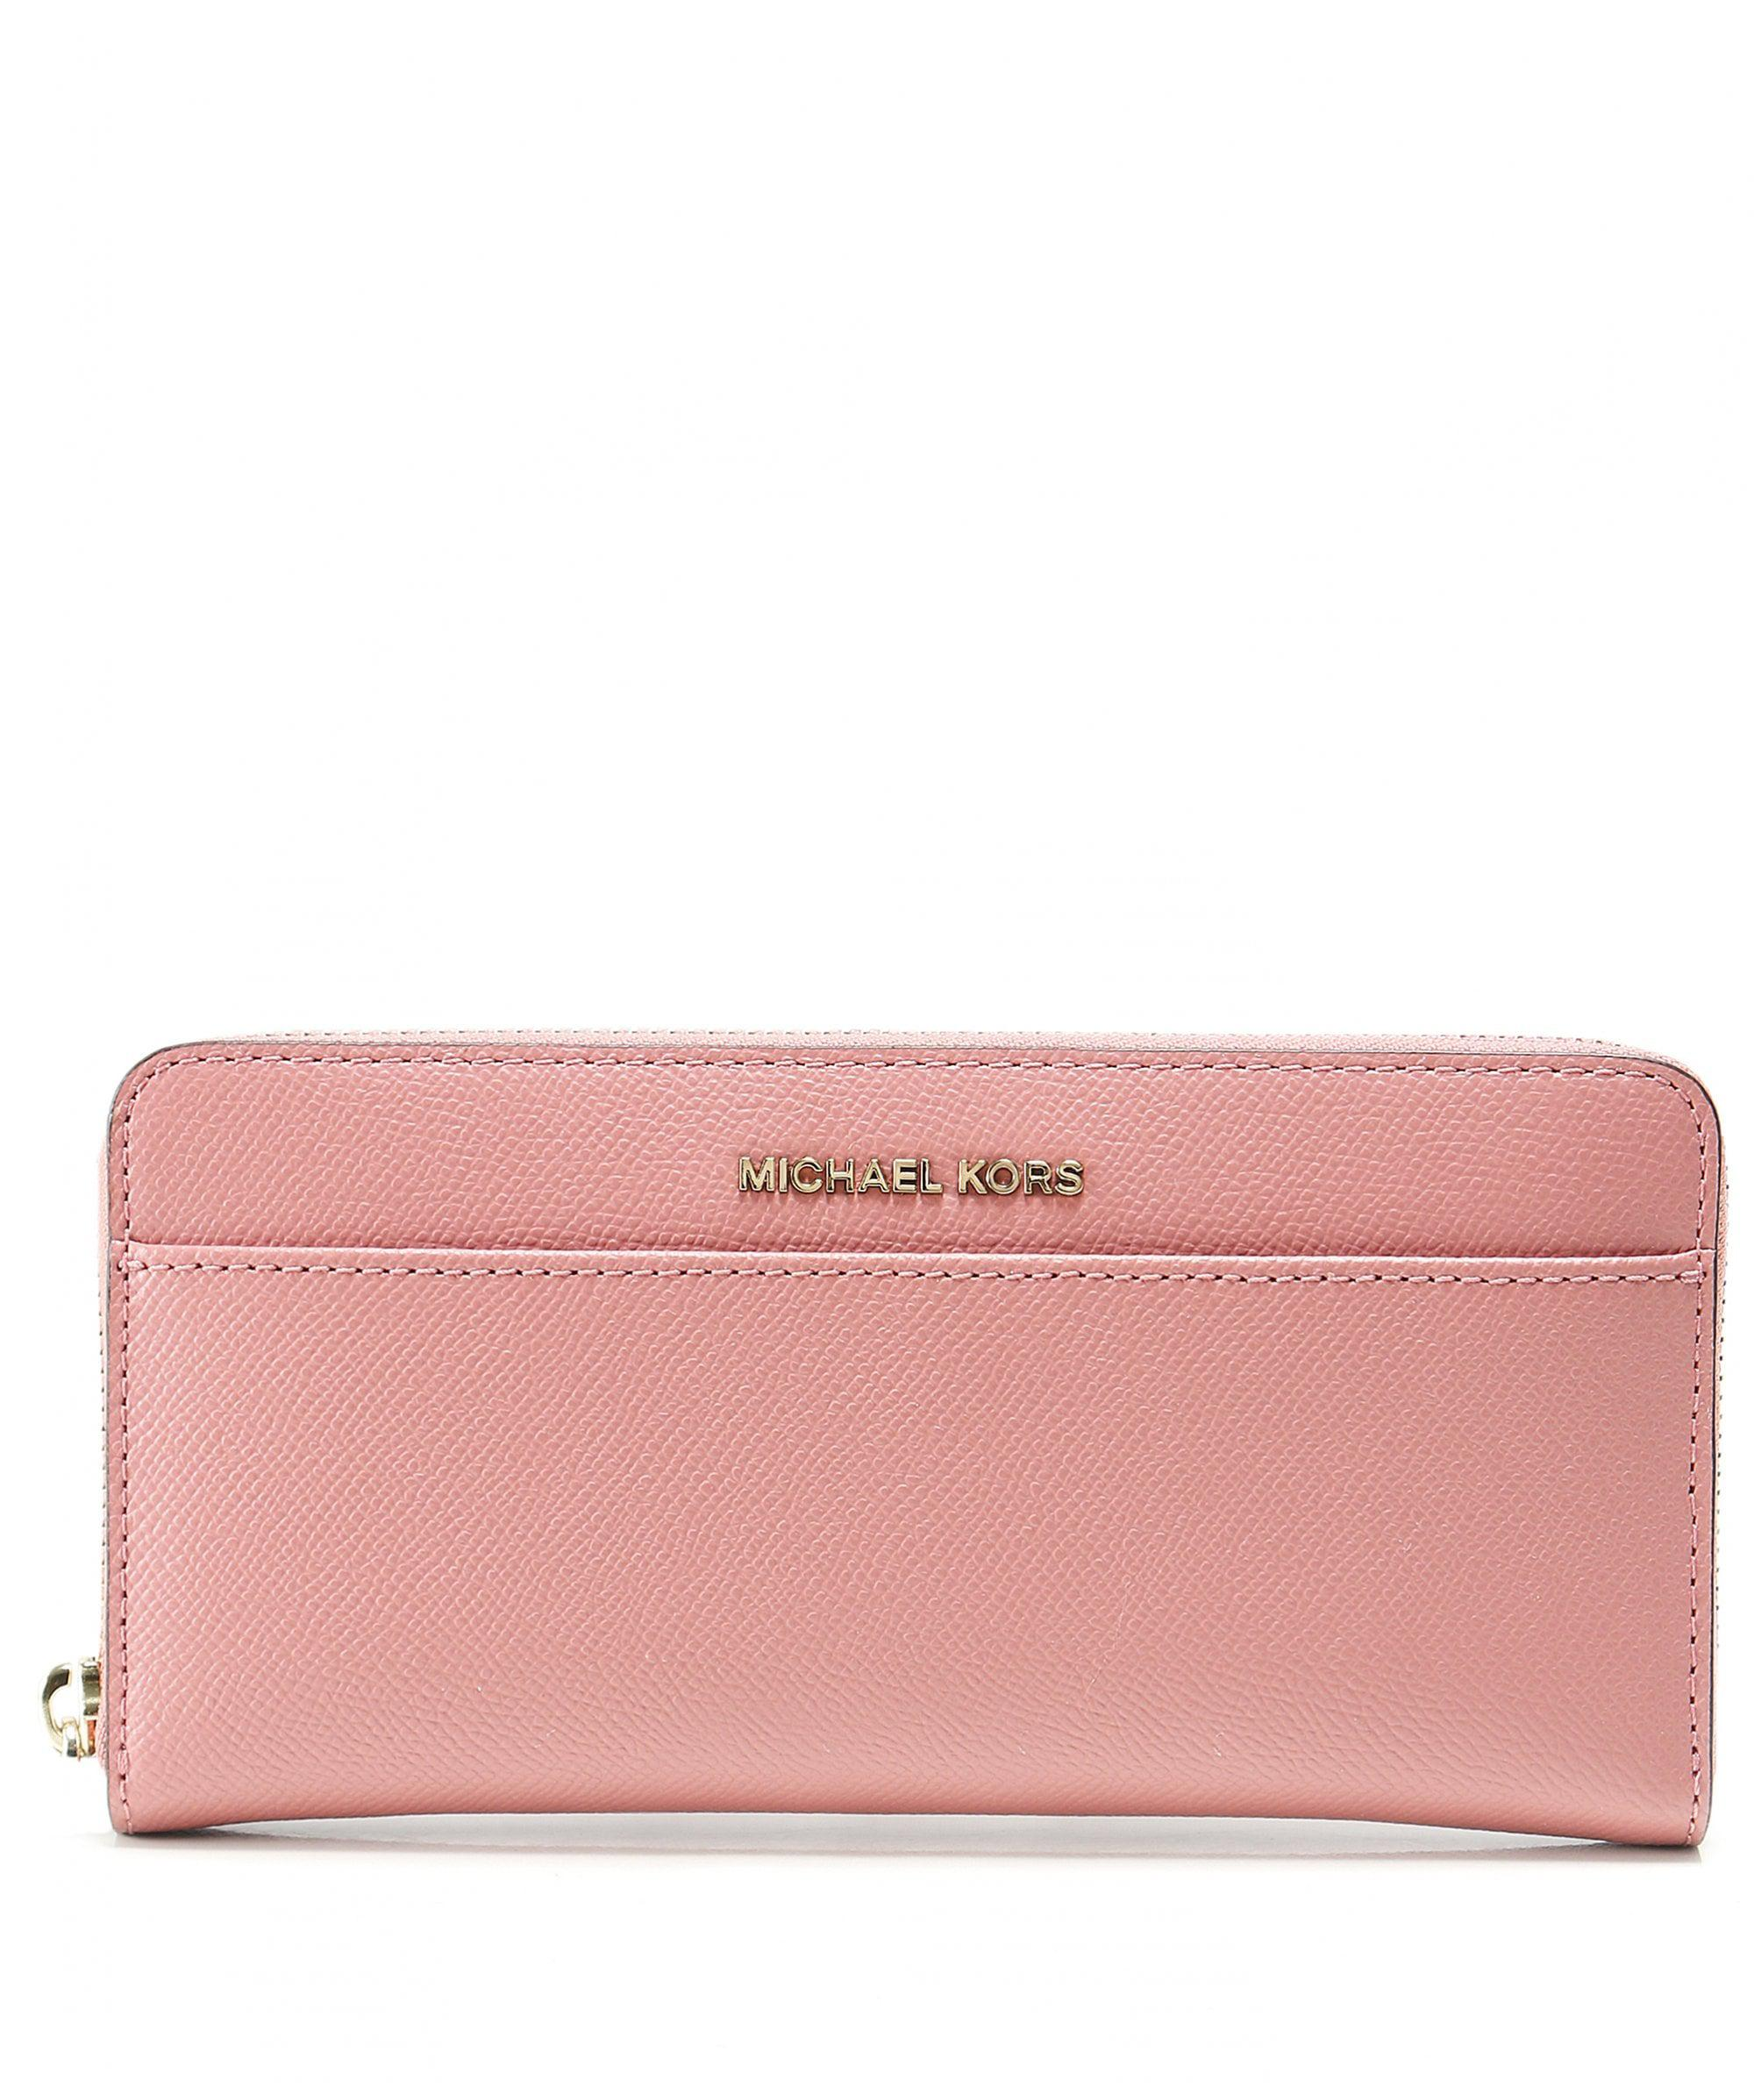 646dee5bcab815 MICHAEL Michael Kors Saffiano Leather Continental Purse in Pink - Lyst